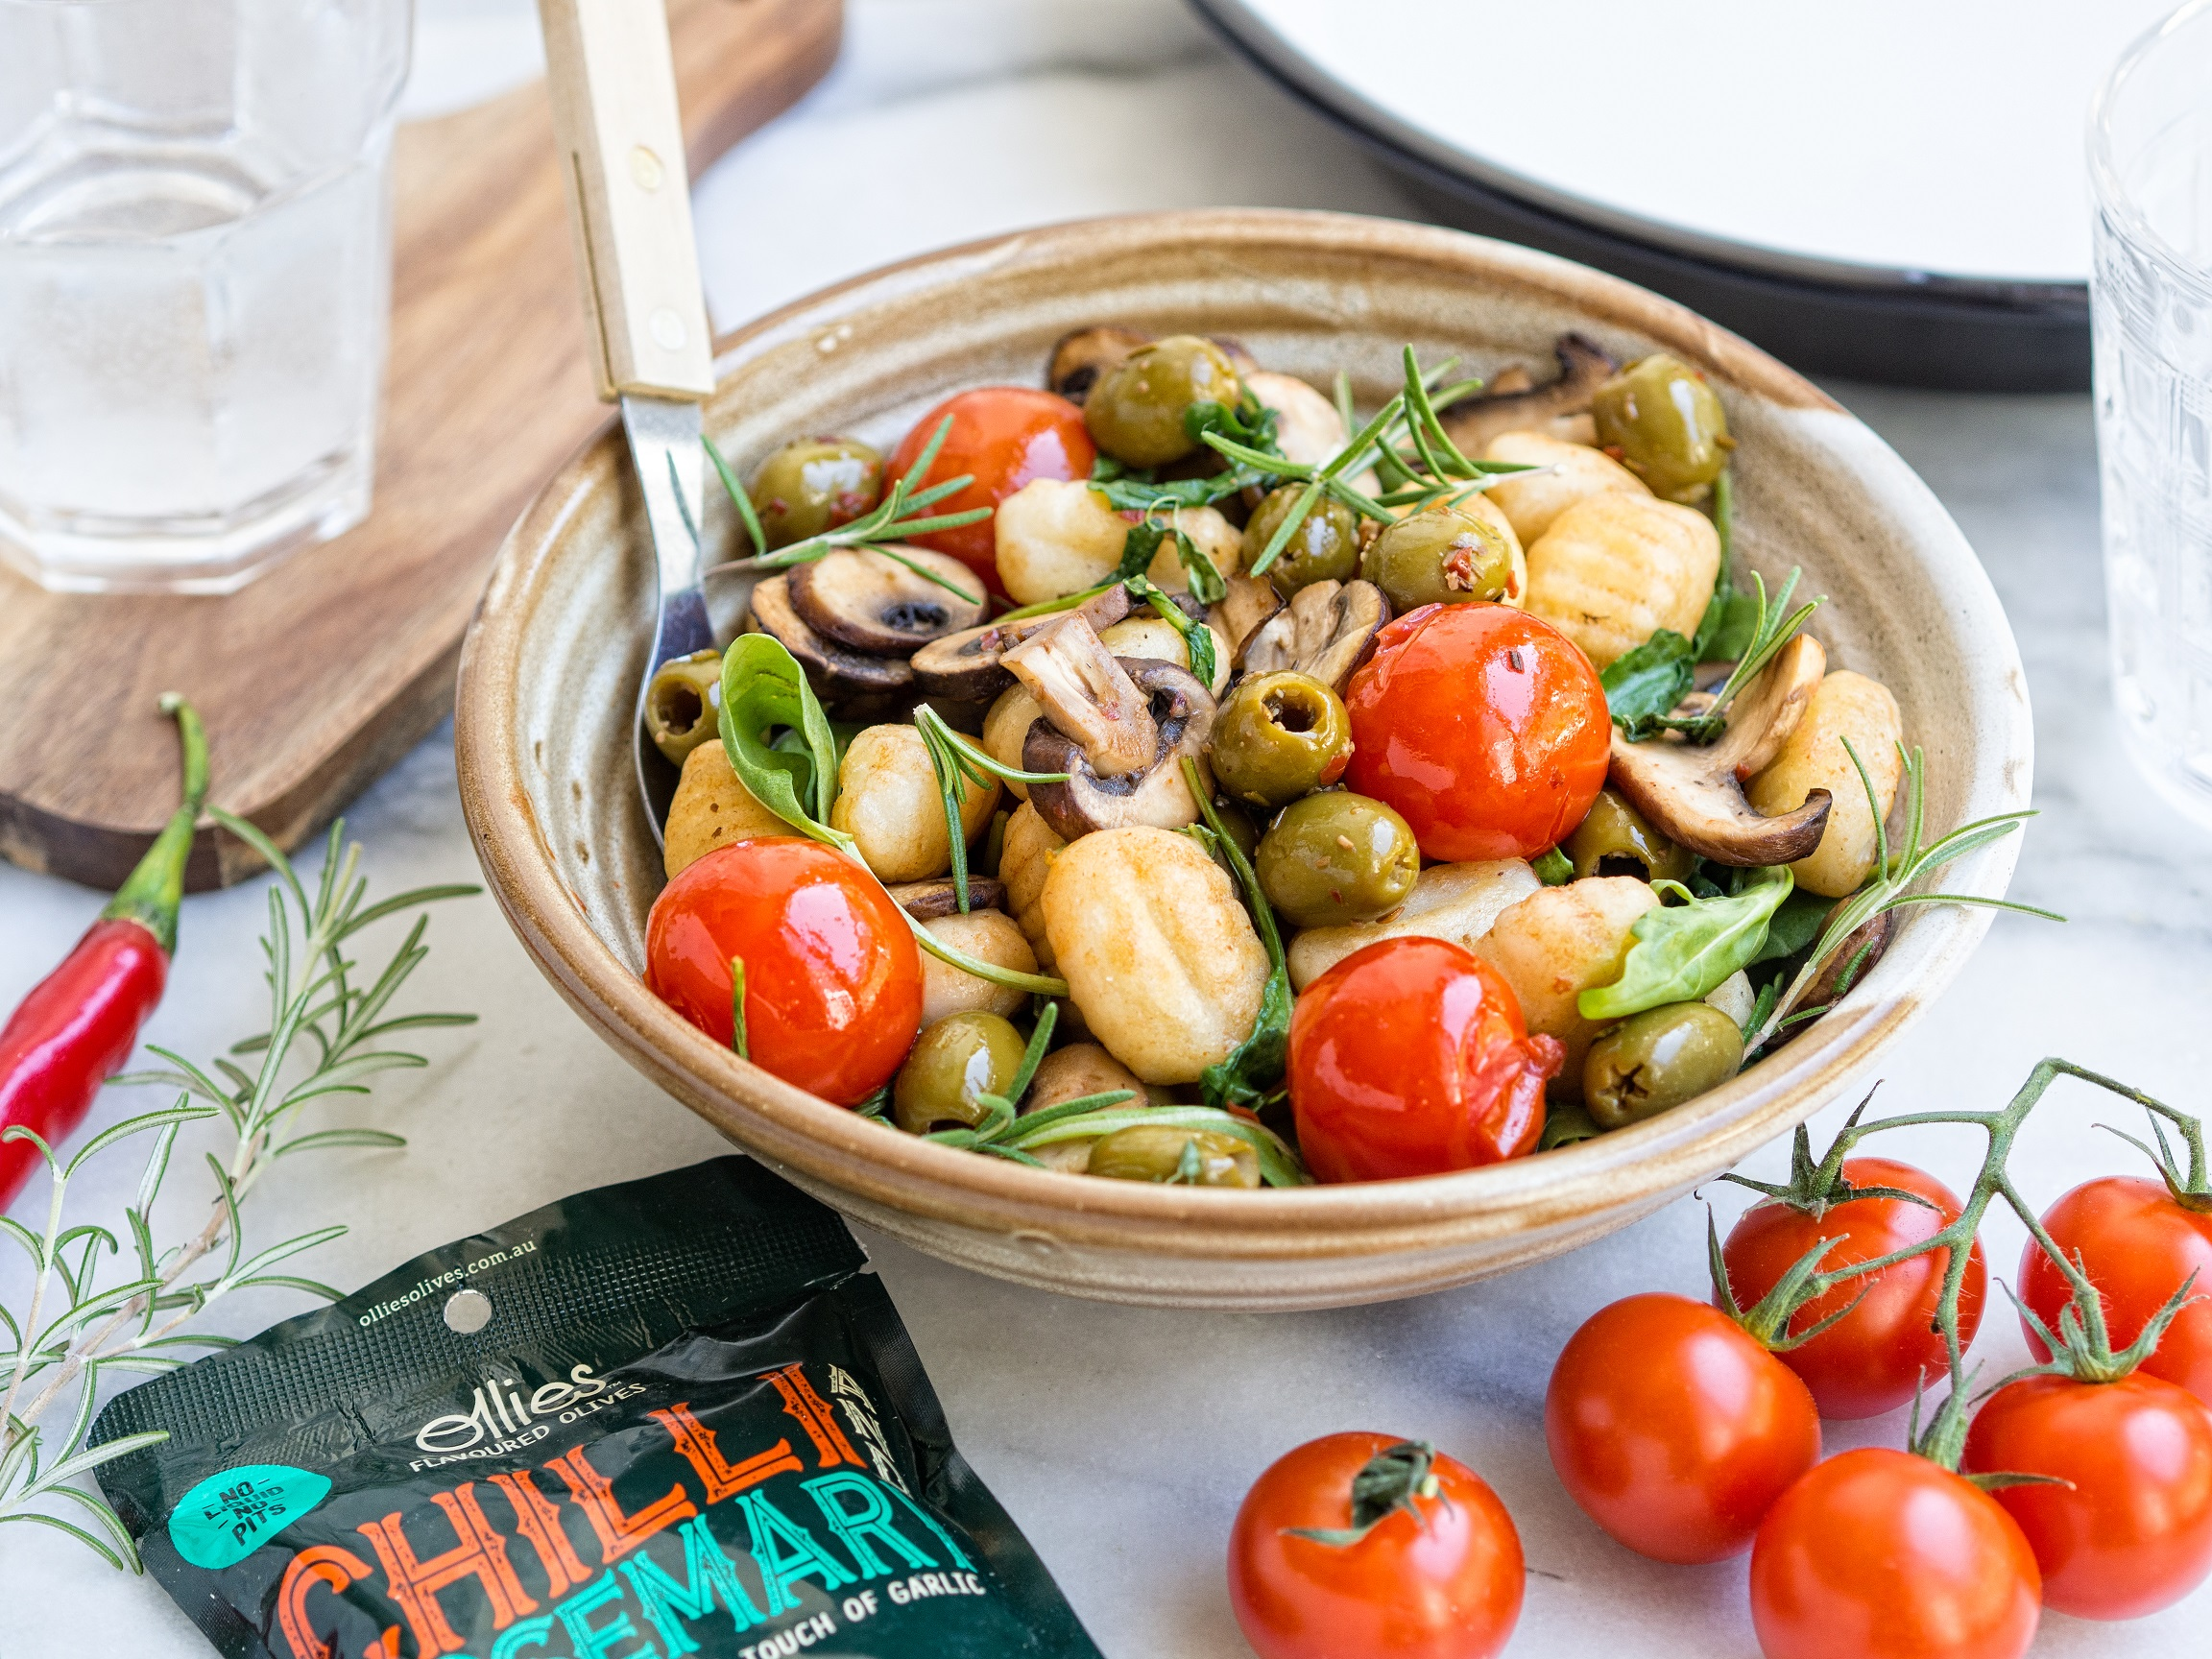 Healthy Vegetable and Olive Gnocchi